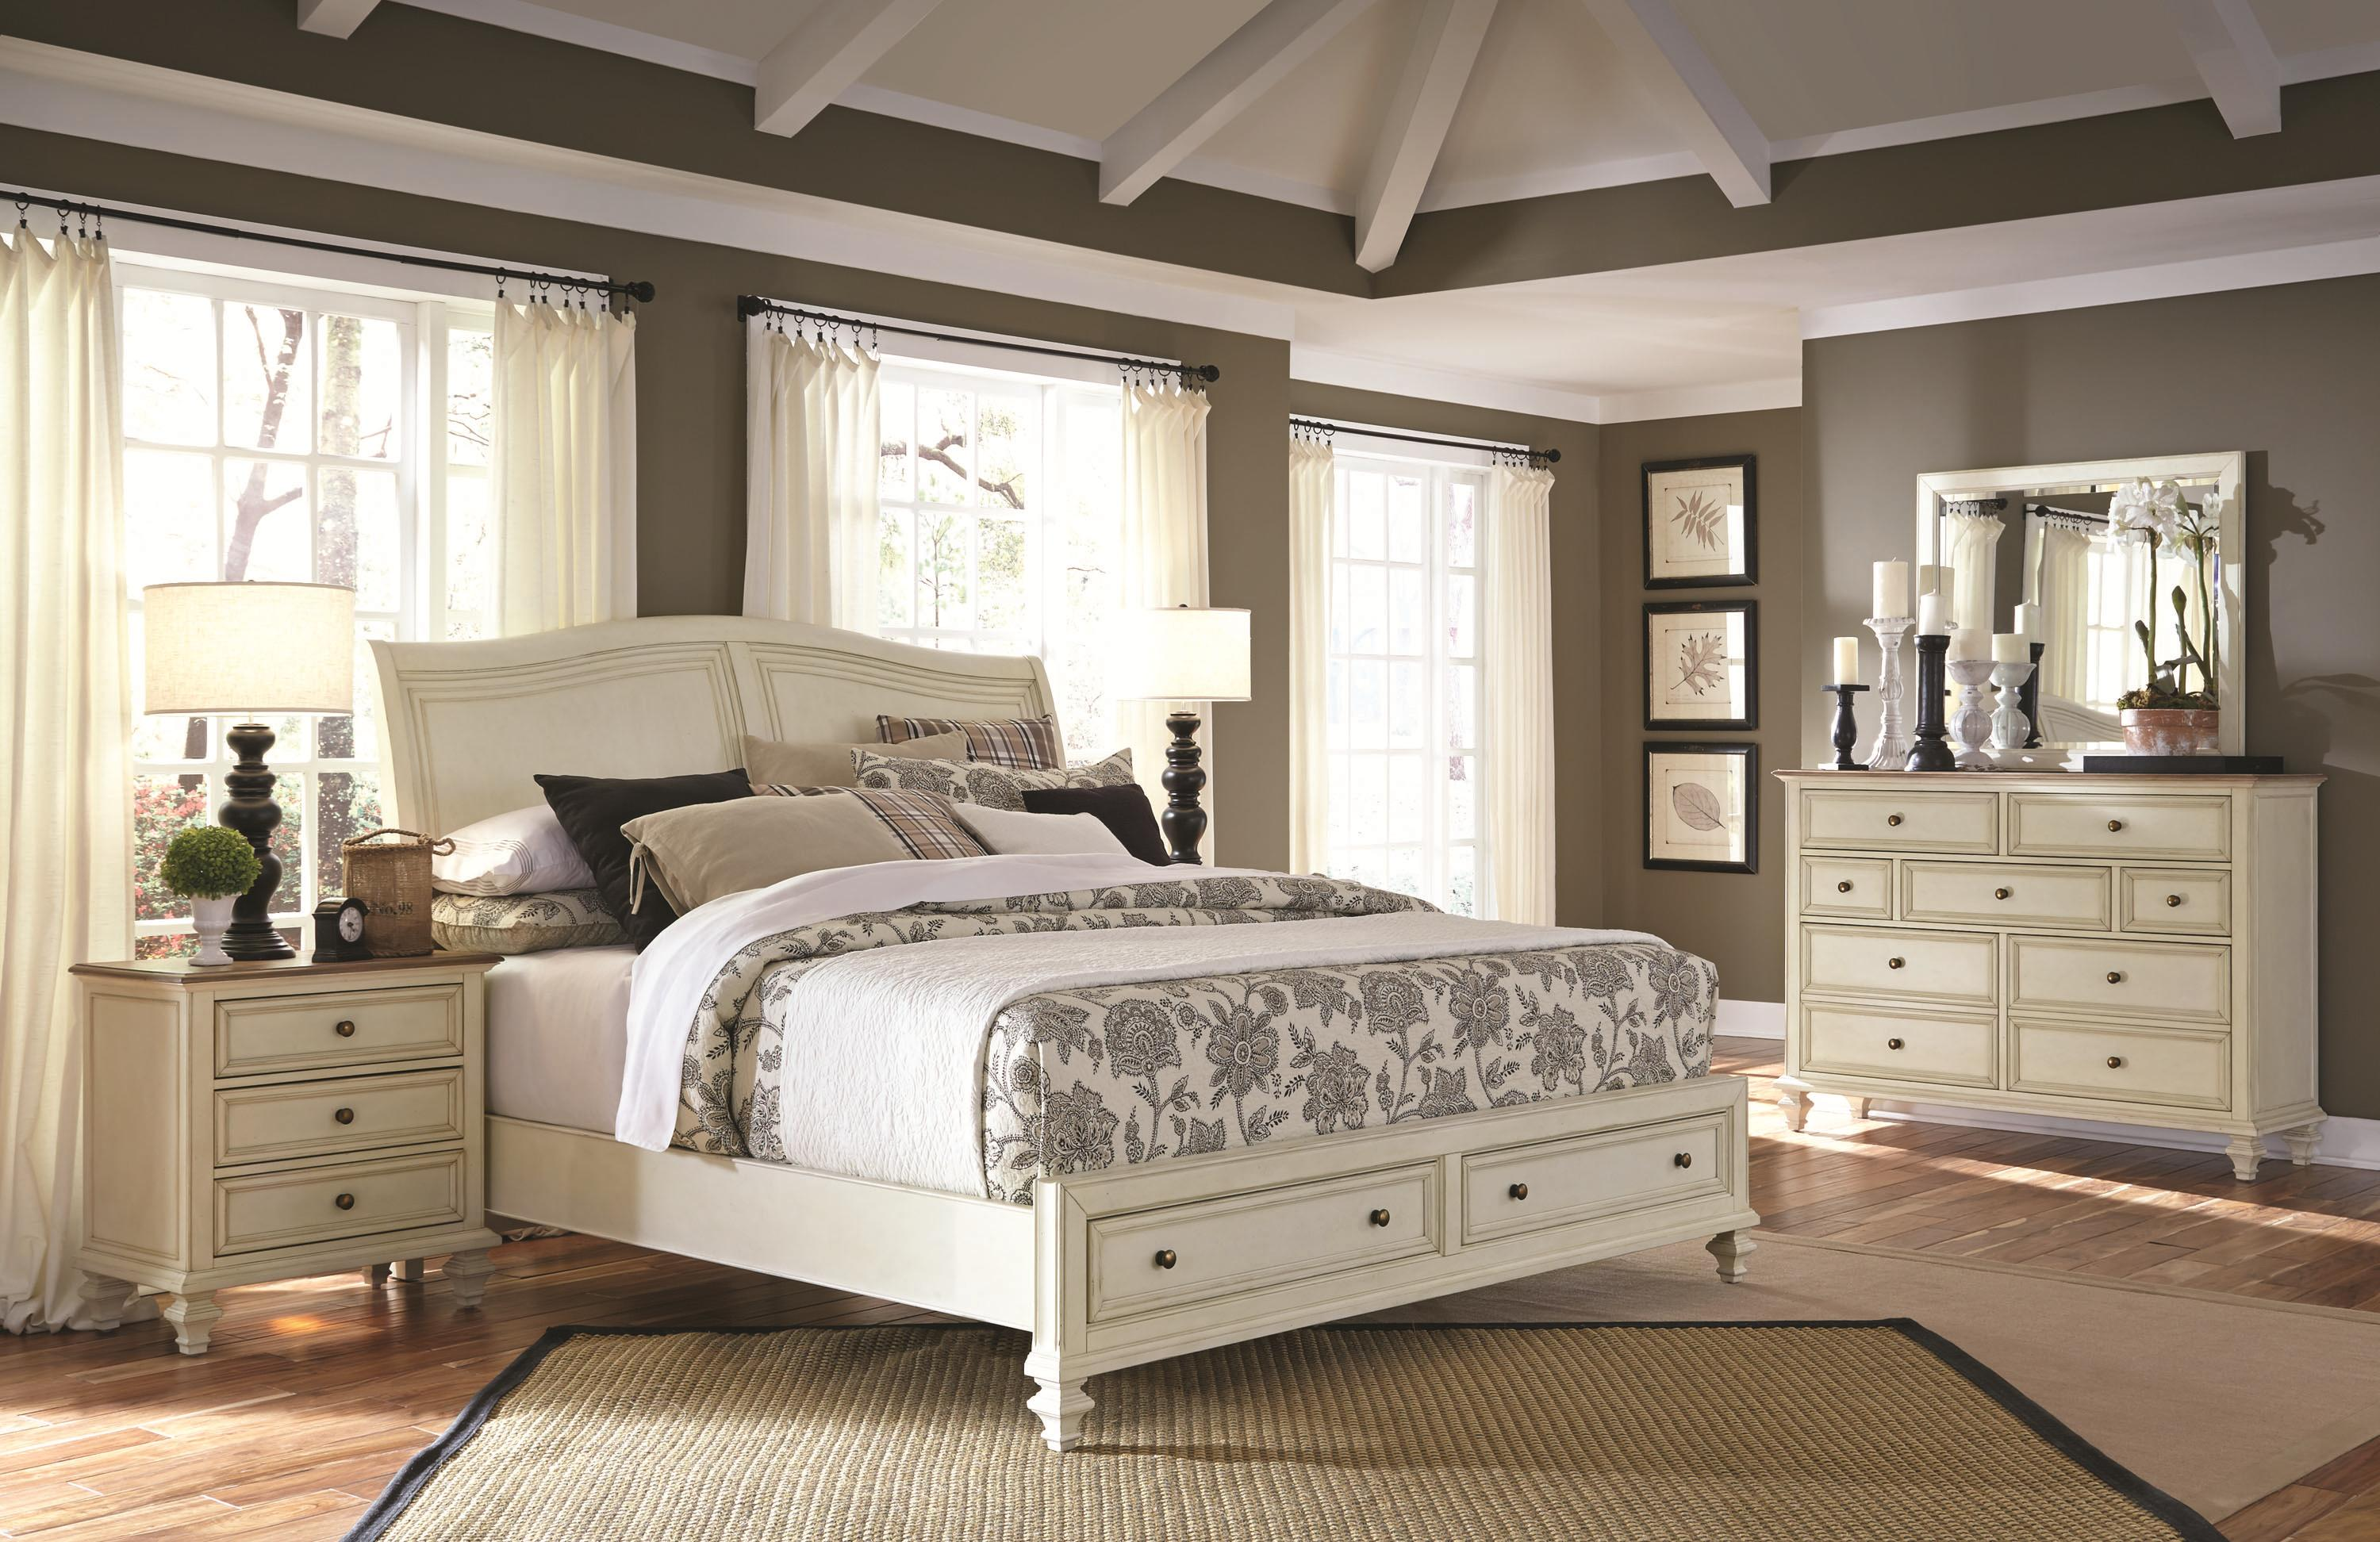 Aspenhome Cottonwood Cal King Bedroom Group - Item Number: I67 California King Bedroom Group 2